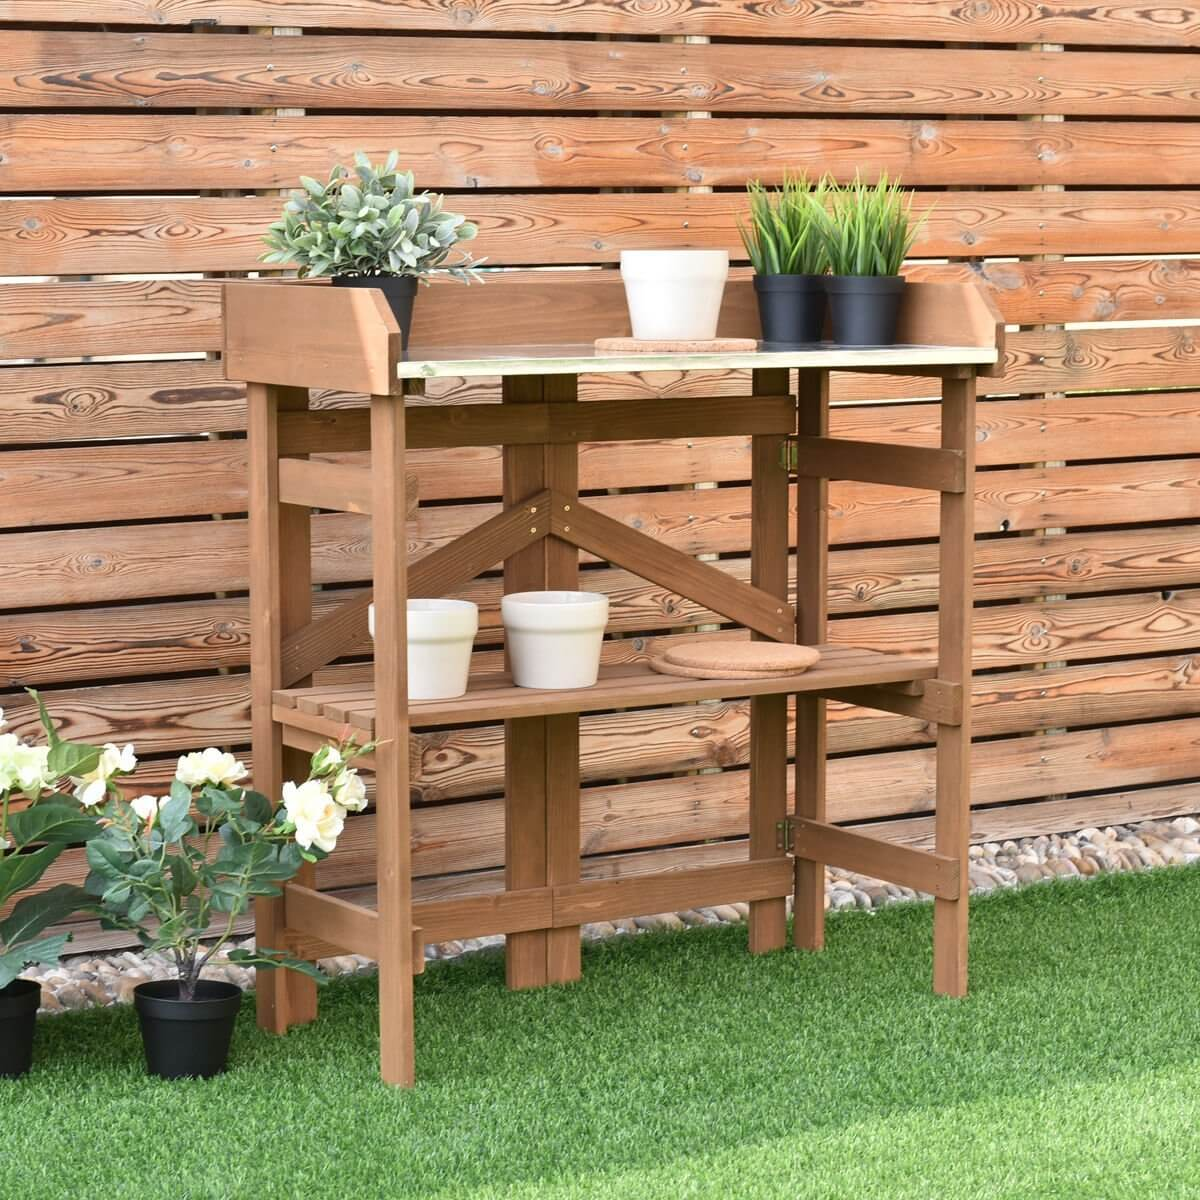 Potting Benches • Insteading